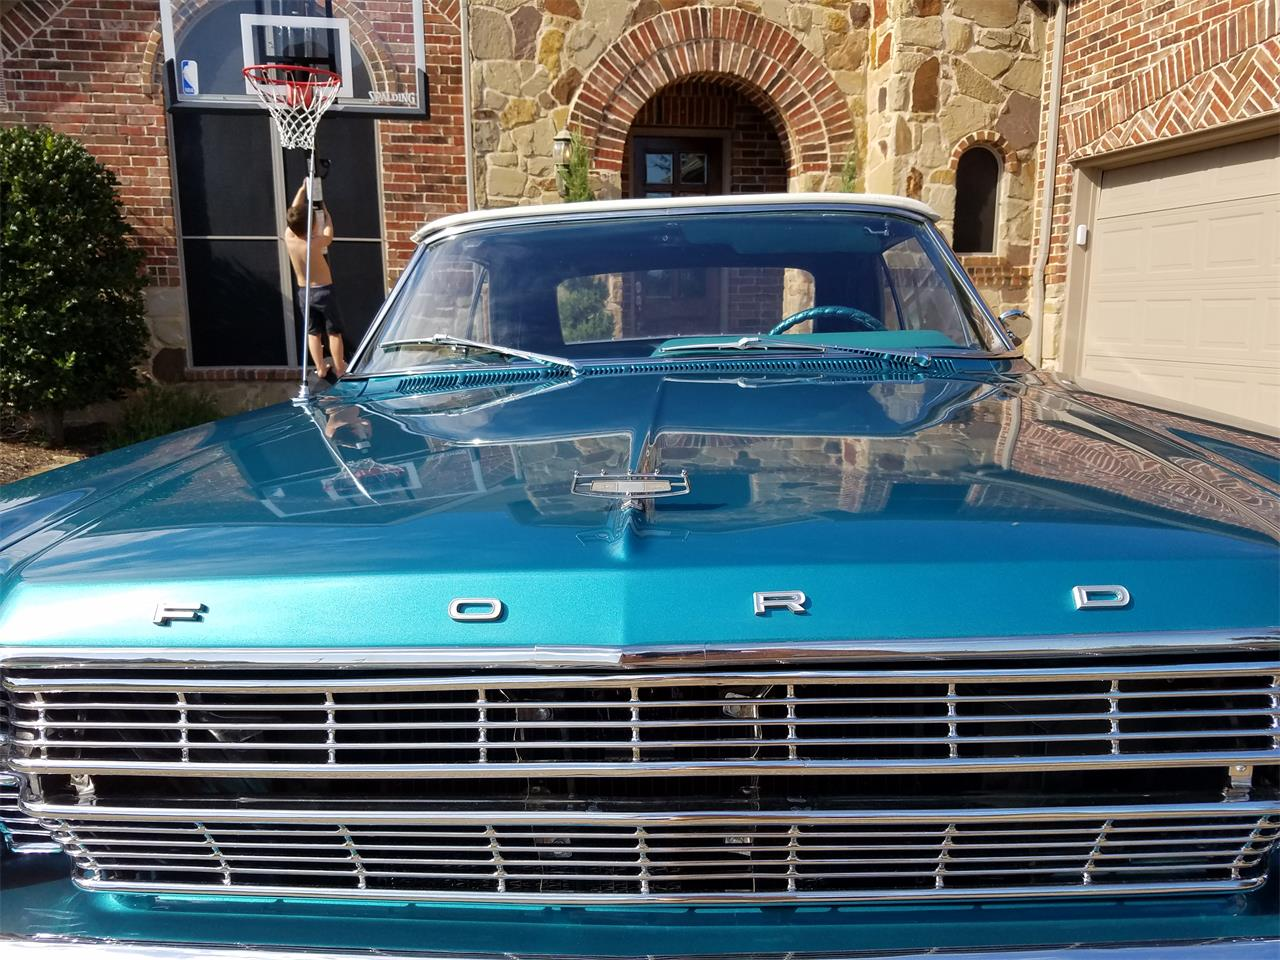 Large Picture of '66 Ford Galaxie 500 located in Texas - $29,900.00 - L5E8